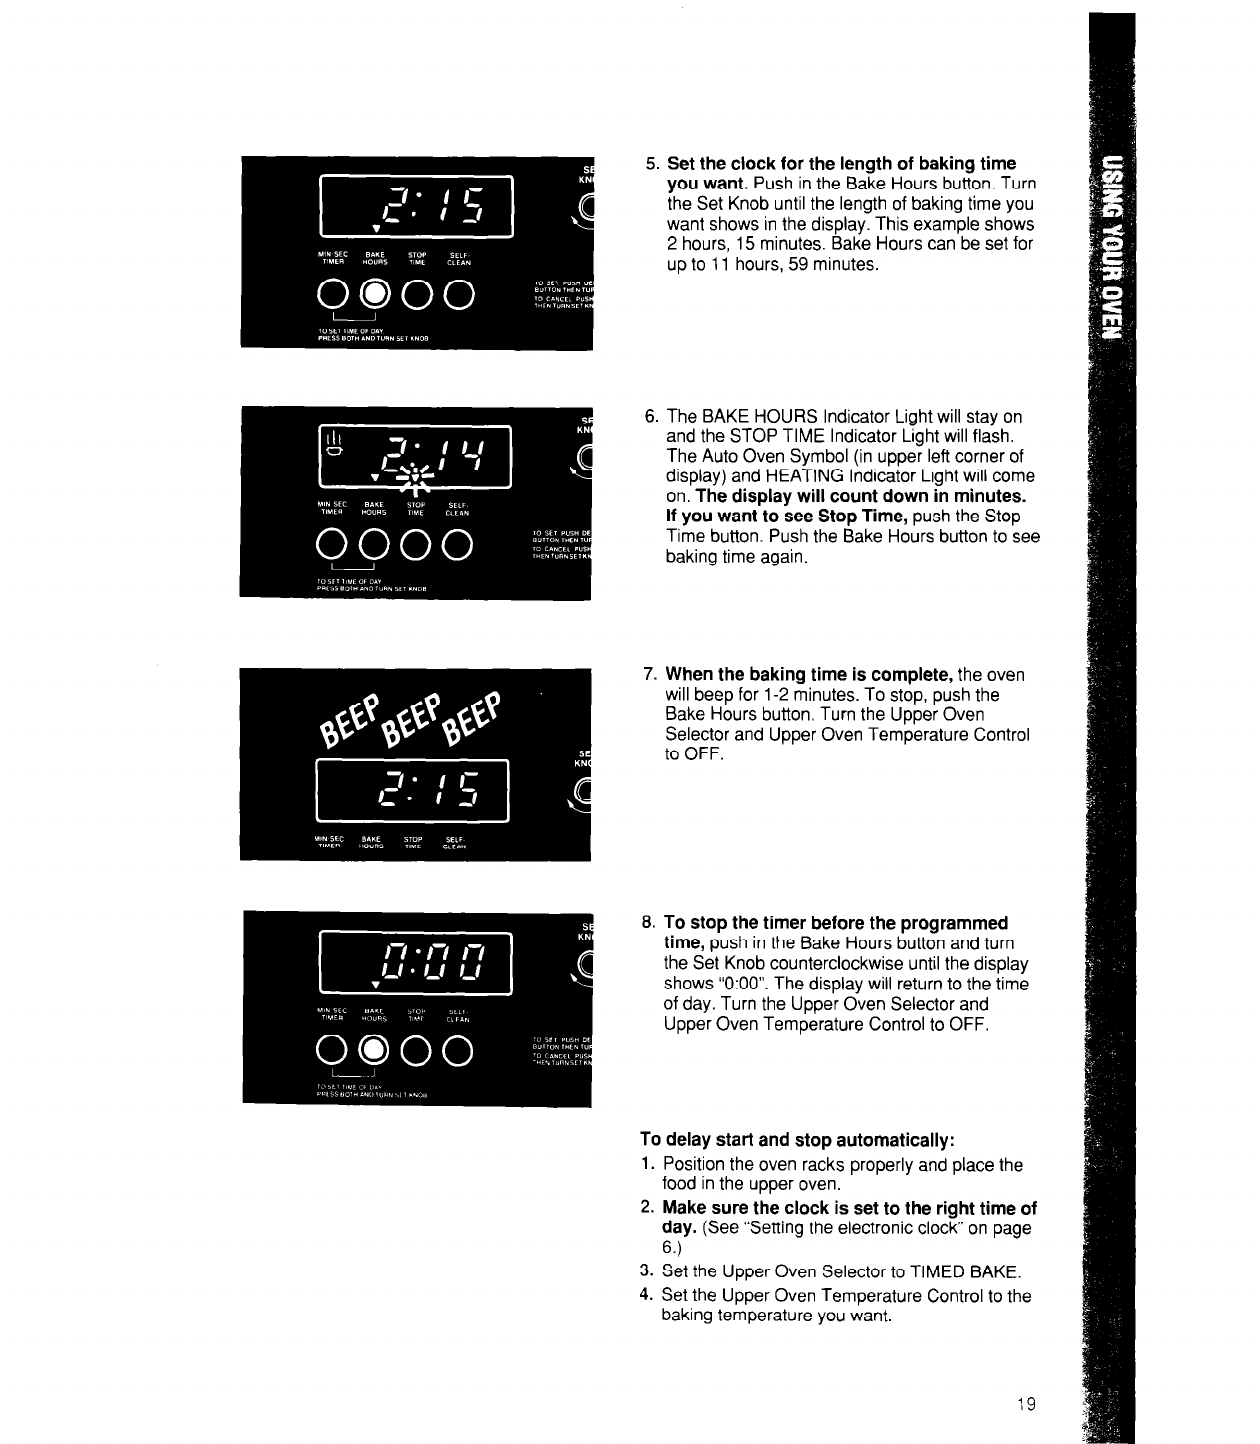 Page 19 of whirlpool oven rb760pxx user guide manualsonline 5 set the clock for the length of baking time biocorpaavc Choice Image